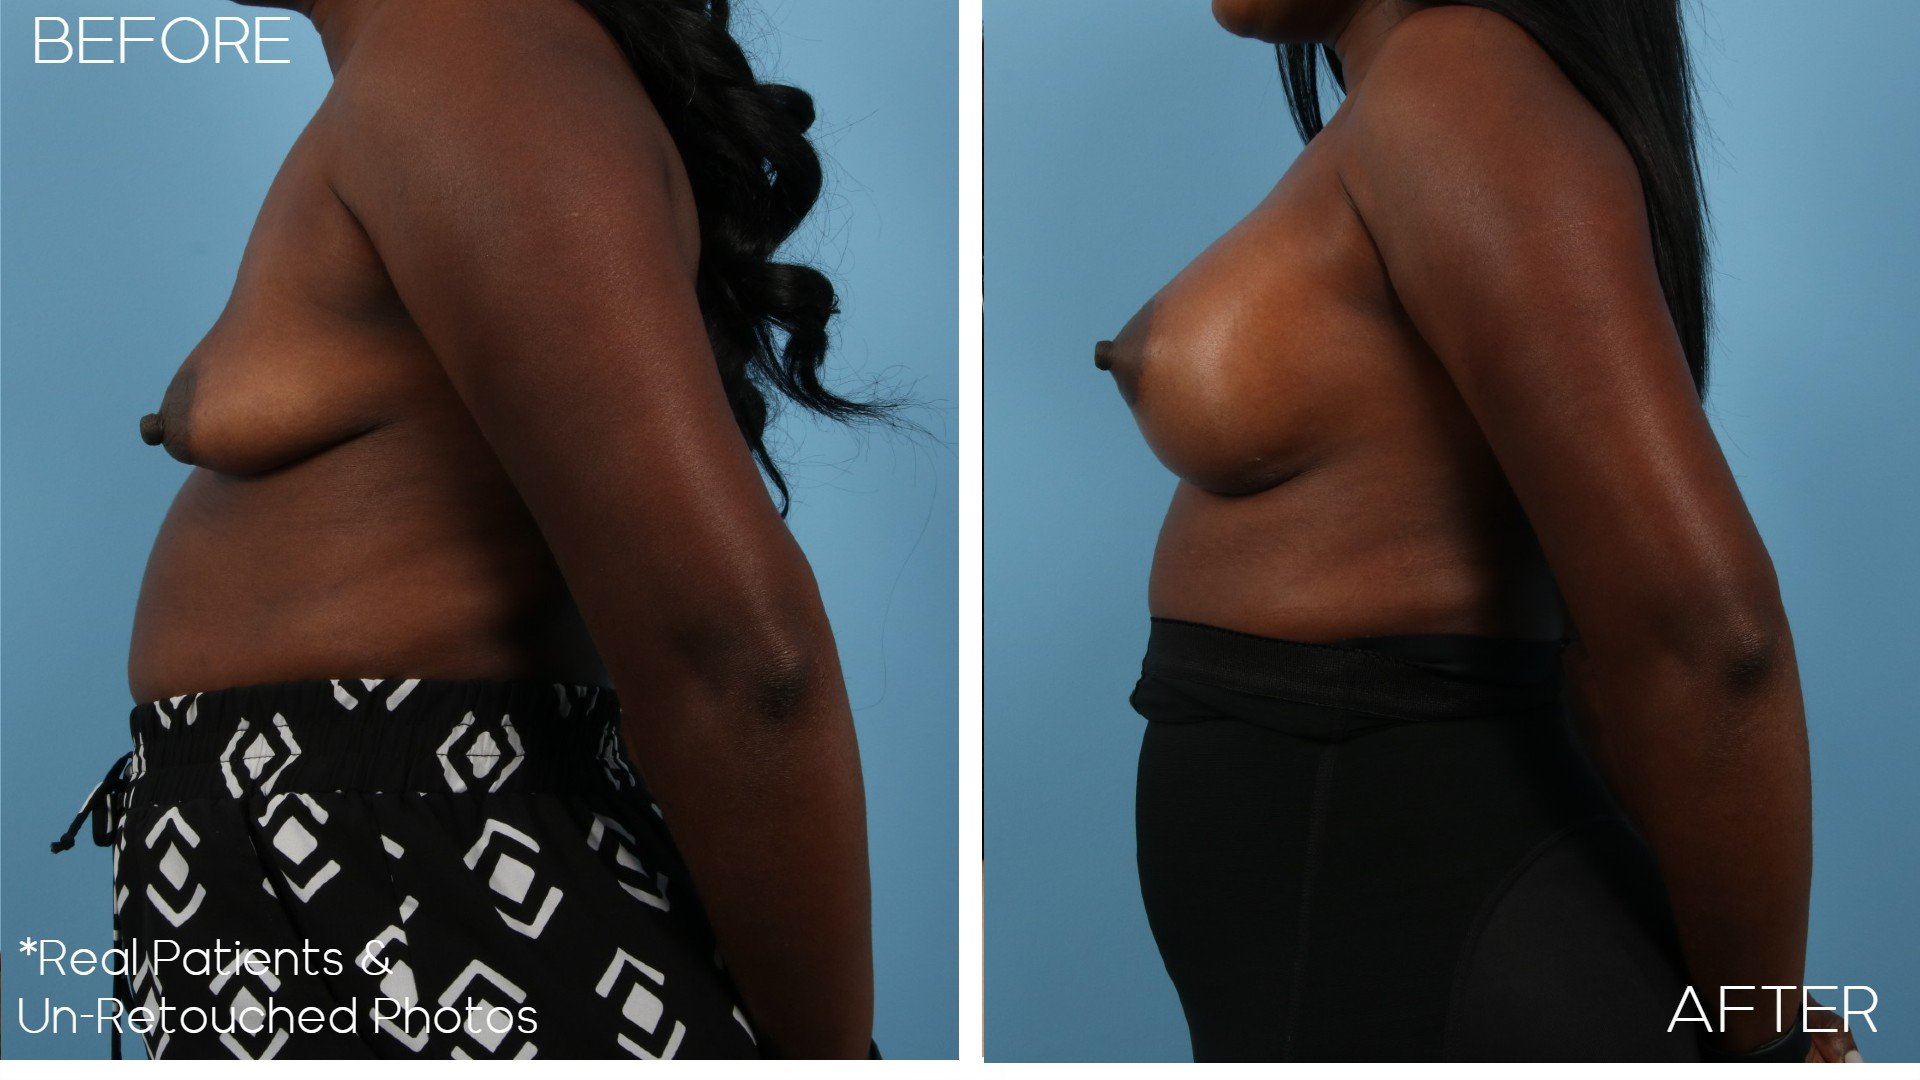 Case-2943-Breast-Augmentation-Side-Before-and-After